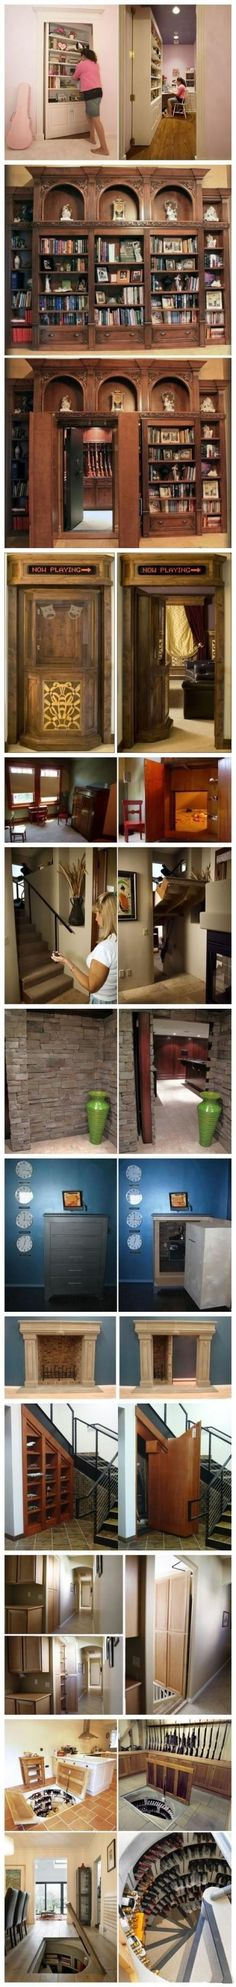 12 excellent concealed door design. I love the flippy stairs one!